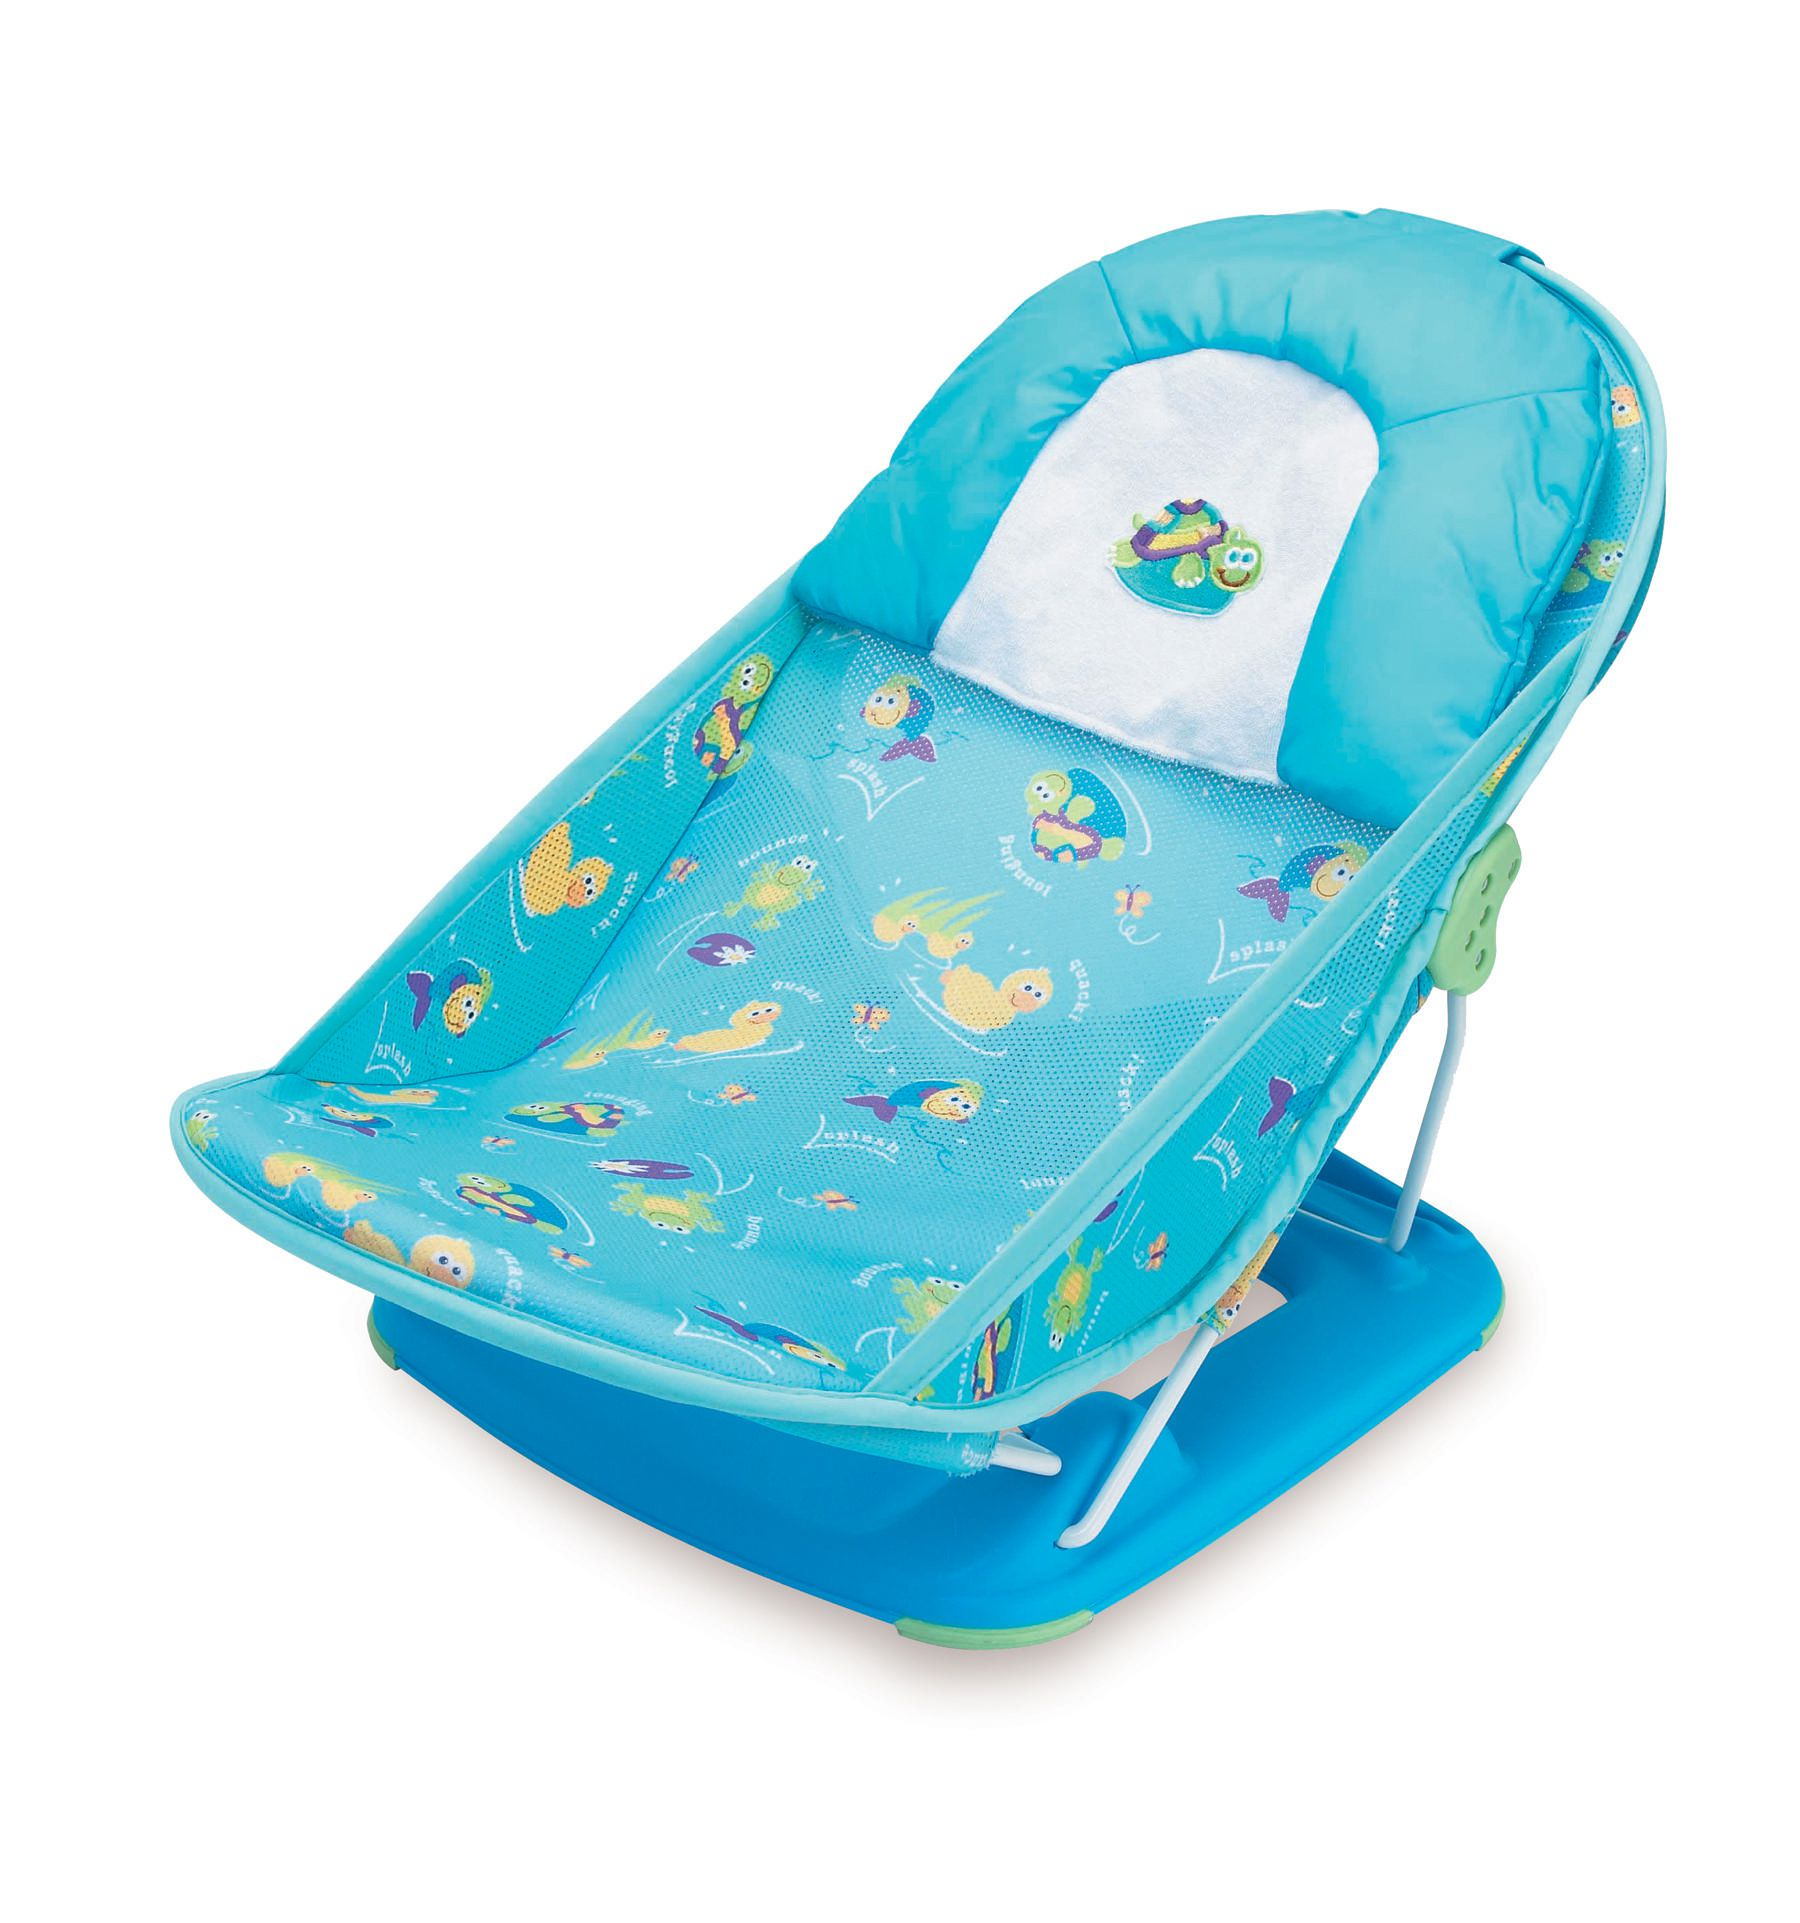 sc 1 st  Walmart Canada & Summer Infant Deluxe Bather | Walmart Canada